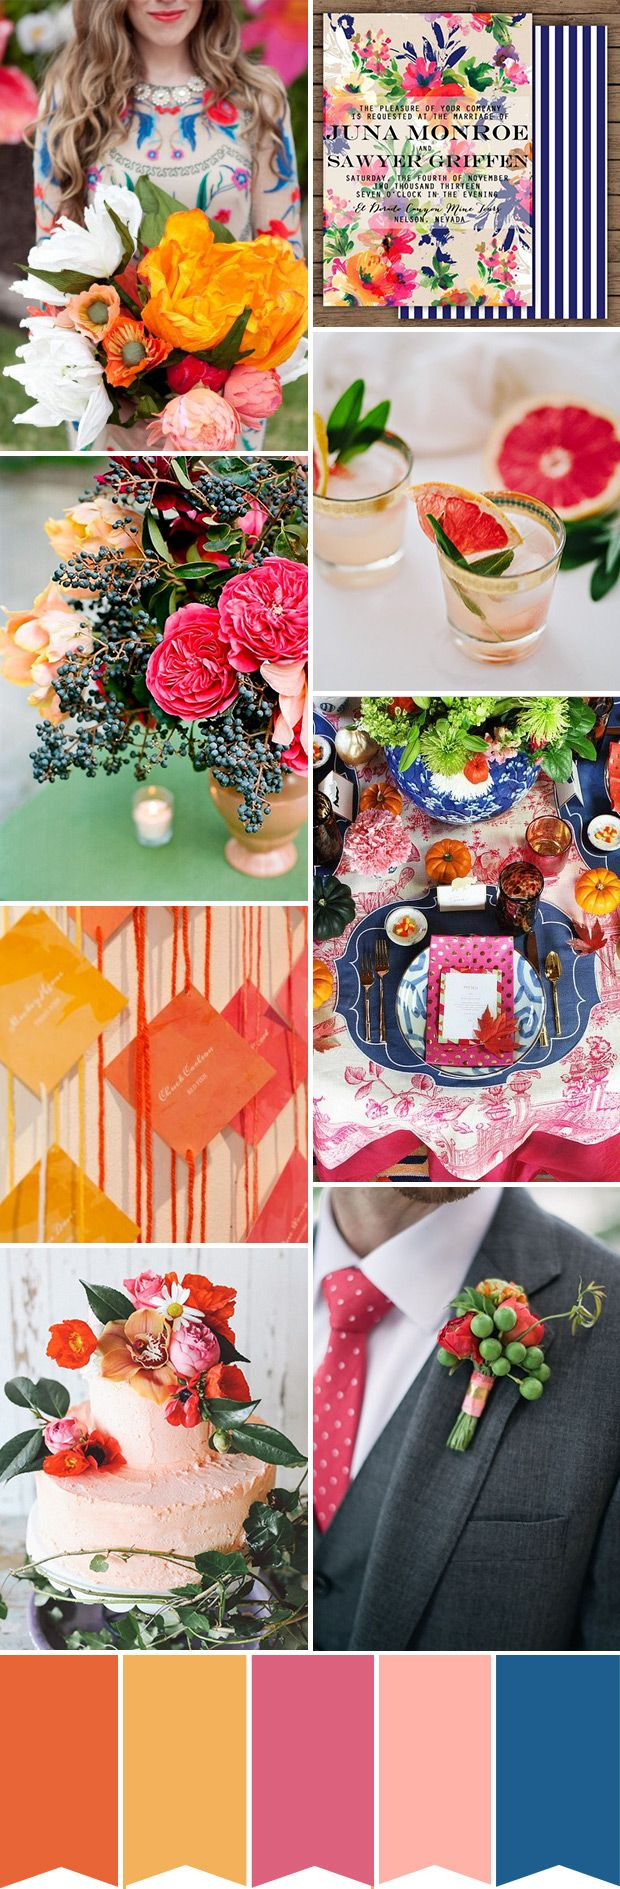 Color pop! Eclectic Orange Pink and Blue Wedding Colour Palette | Colores Pop; naranja, rosa y azul | #wedding #boda #paletacolores